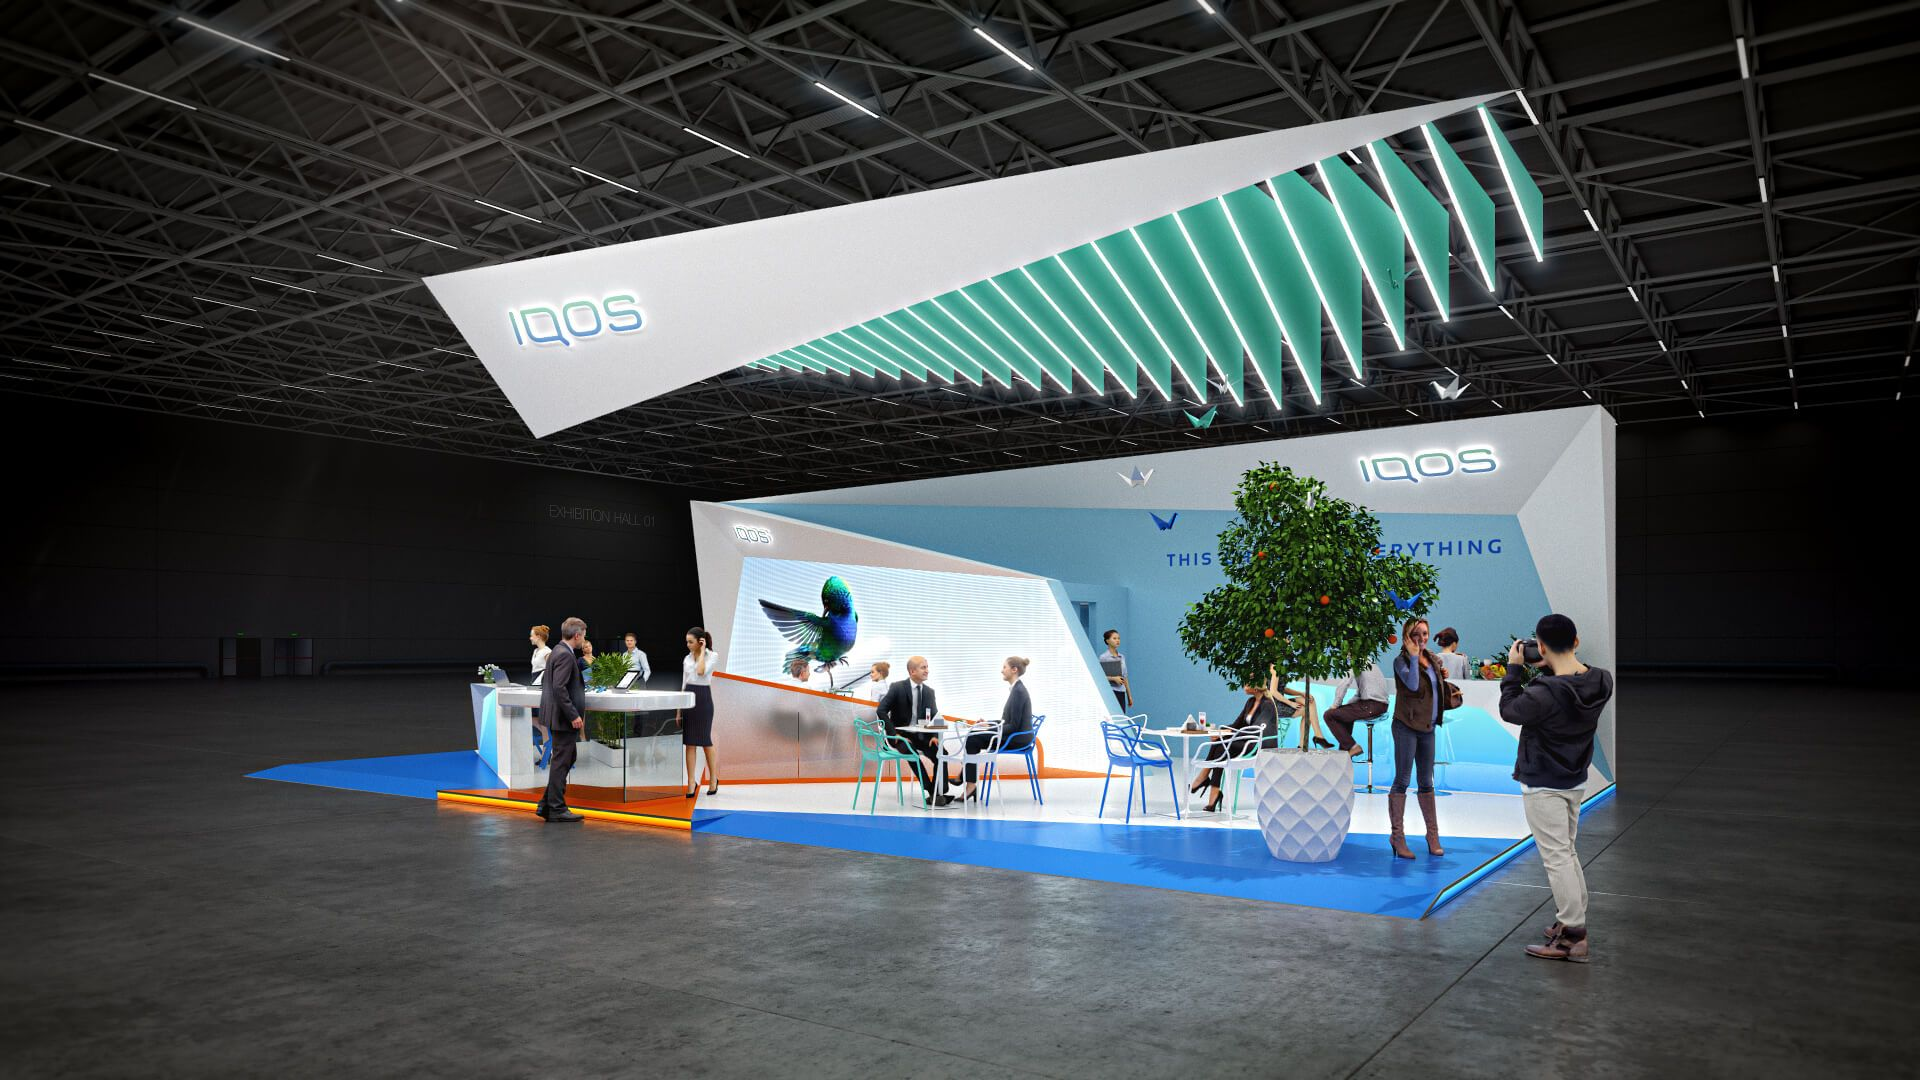 Gm Exhibition Stand Design : Iqos exhibition booth design concept gm stand design